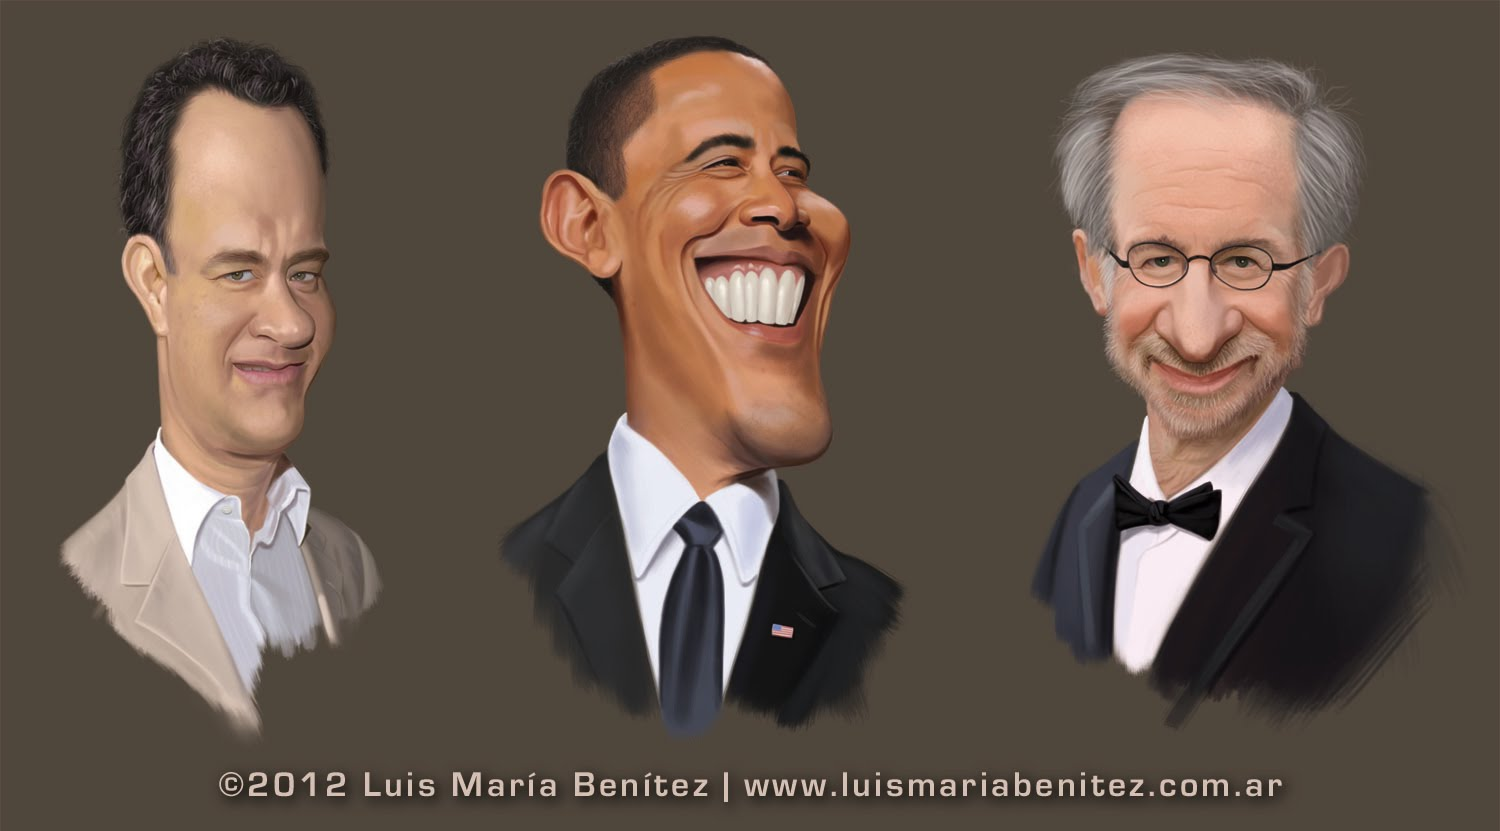 Caricatures: Tom Hanks, Barack Obama and Steven Spielberg / caricaturas © Luis María Benítez